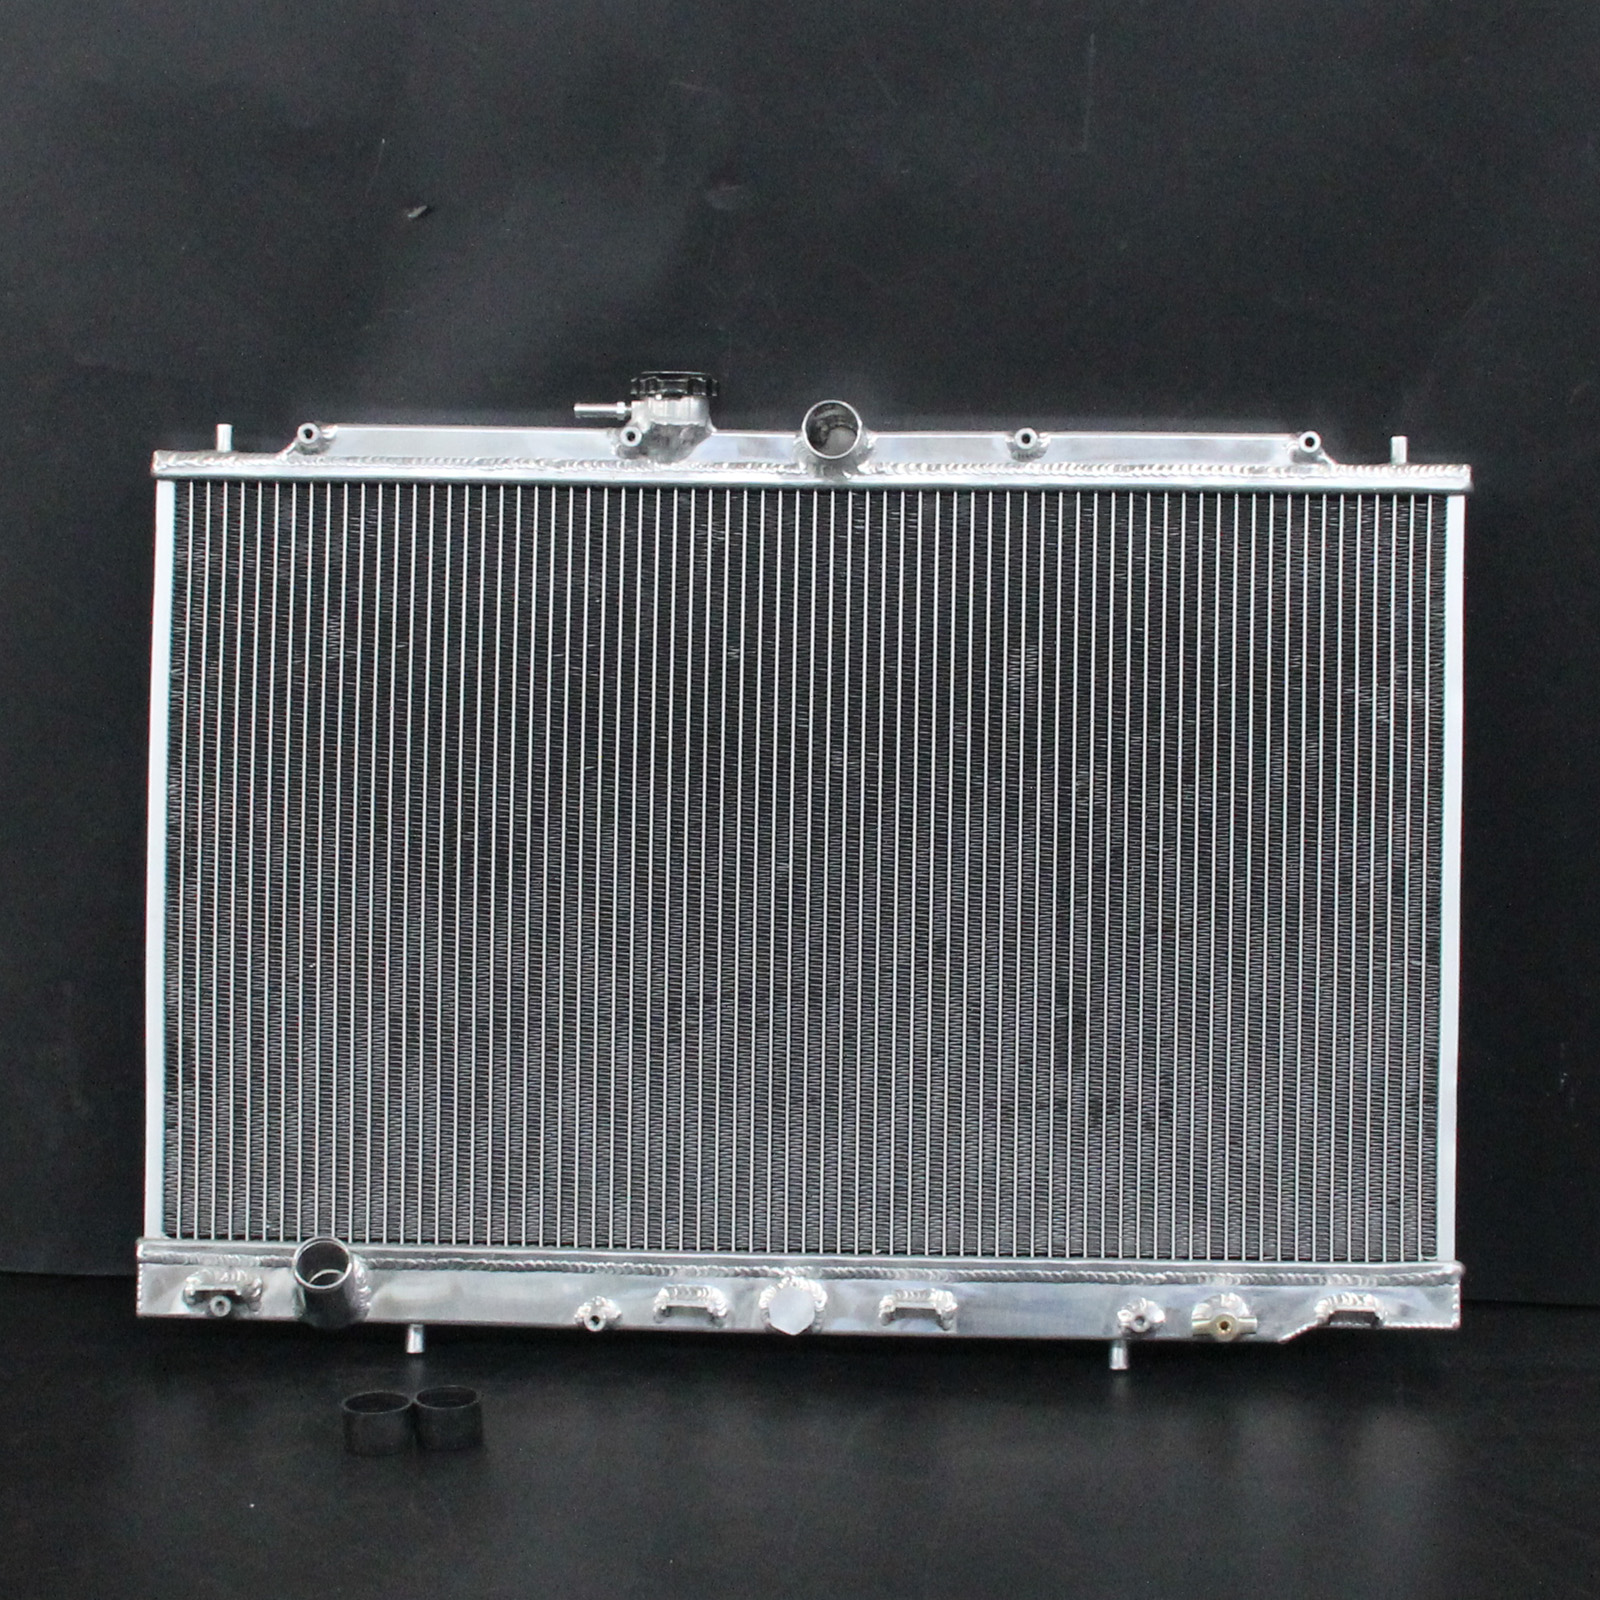 2375 ALUMINUM RADIATOR FOR ACURA FOR CL TL 3.2 V6 WITH